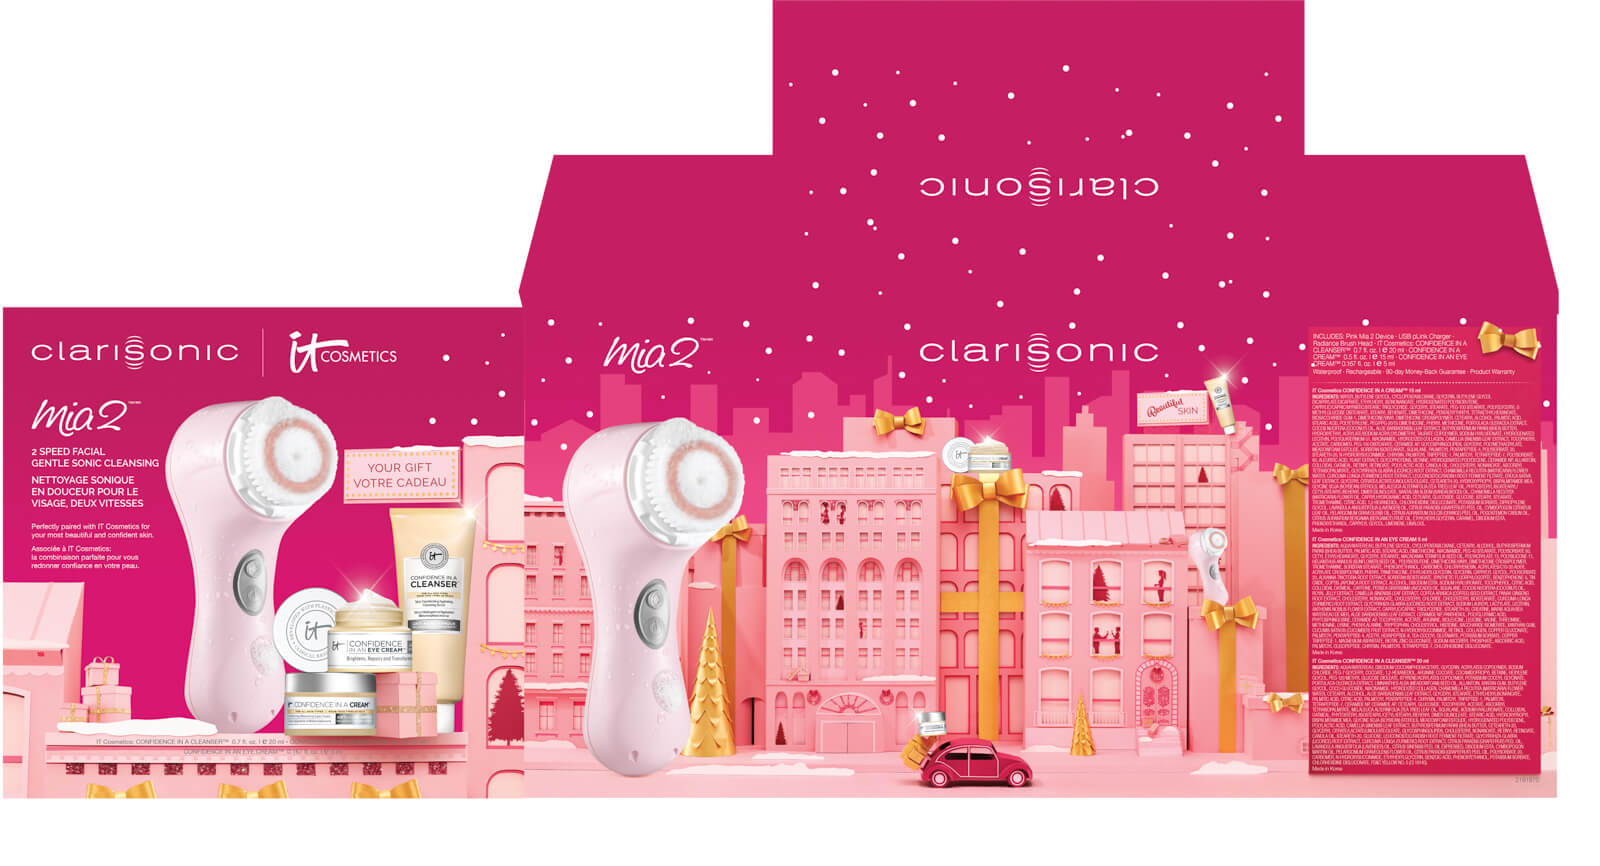 Adrian-Gidi-Clarisonic-packaging-4